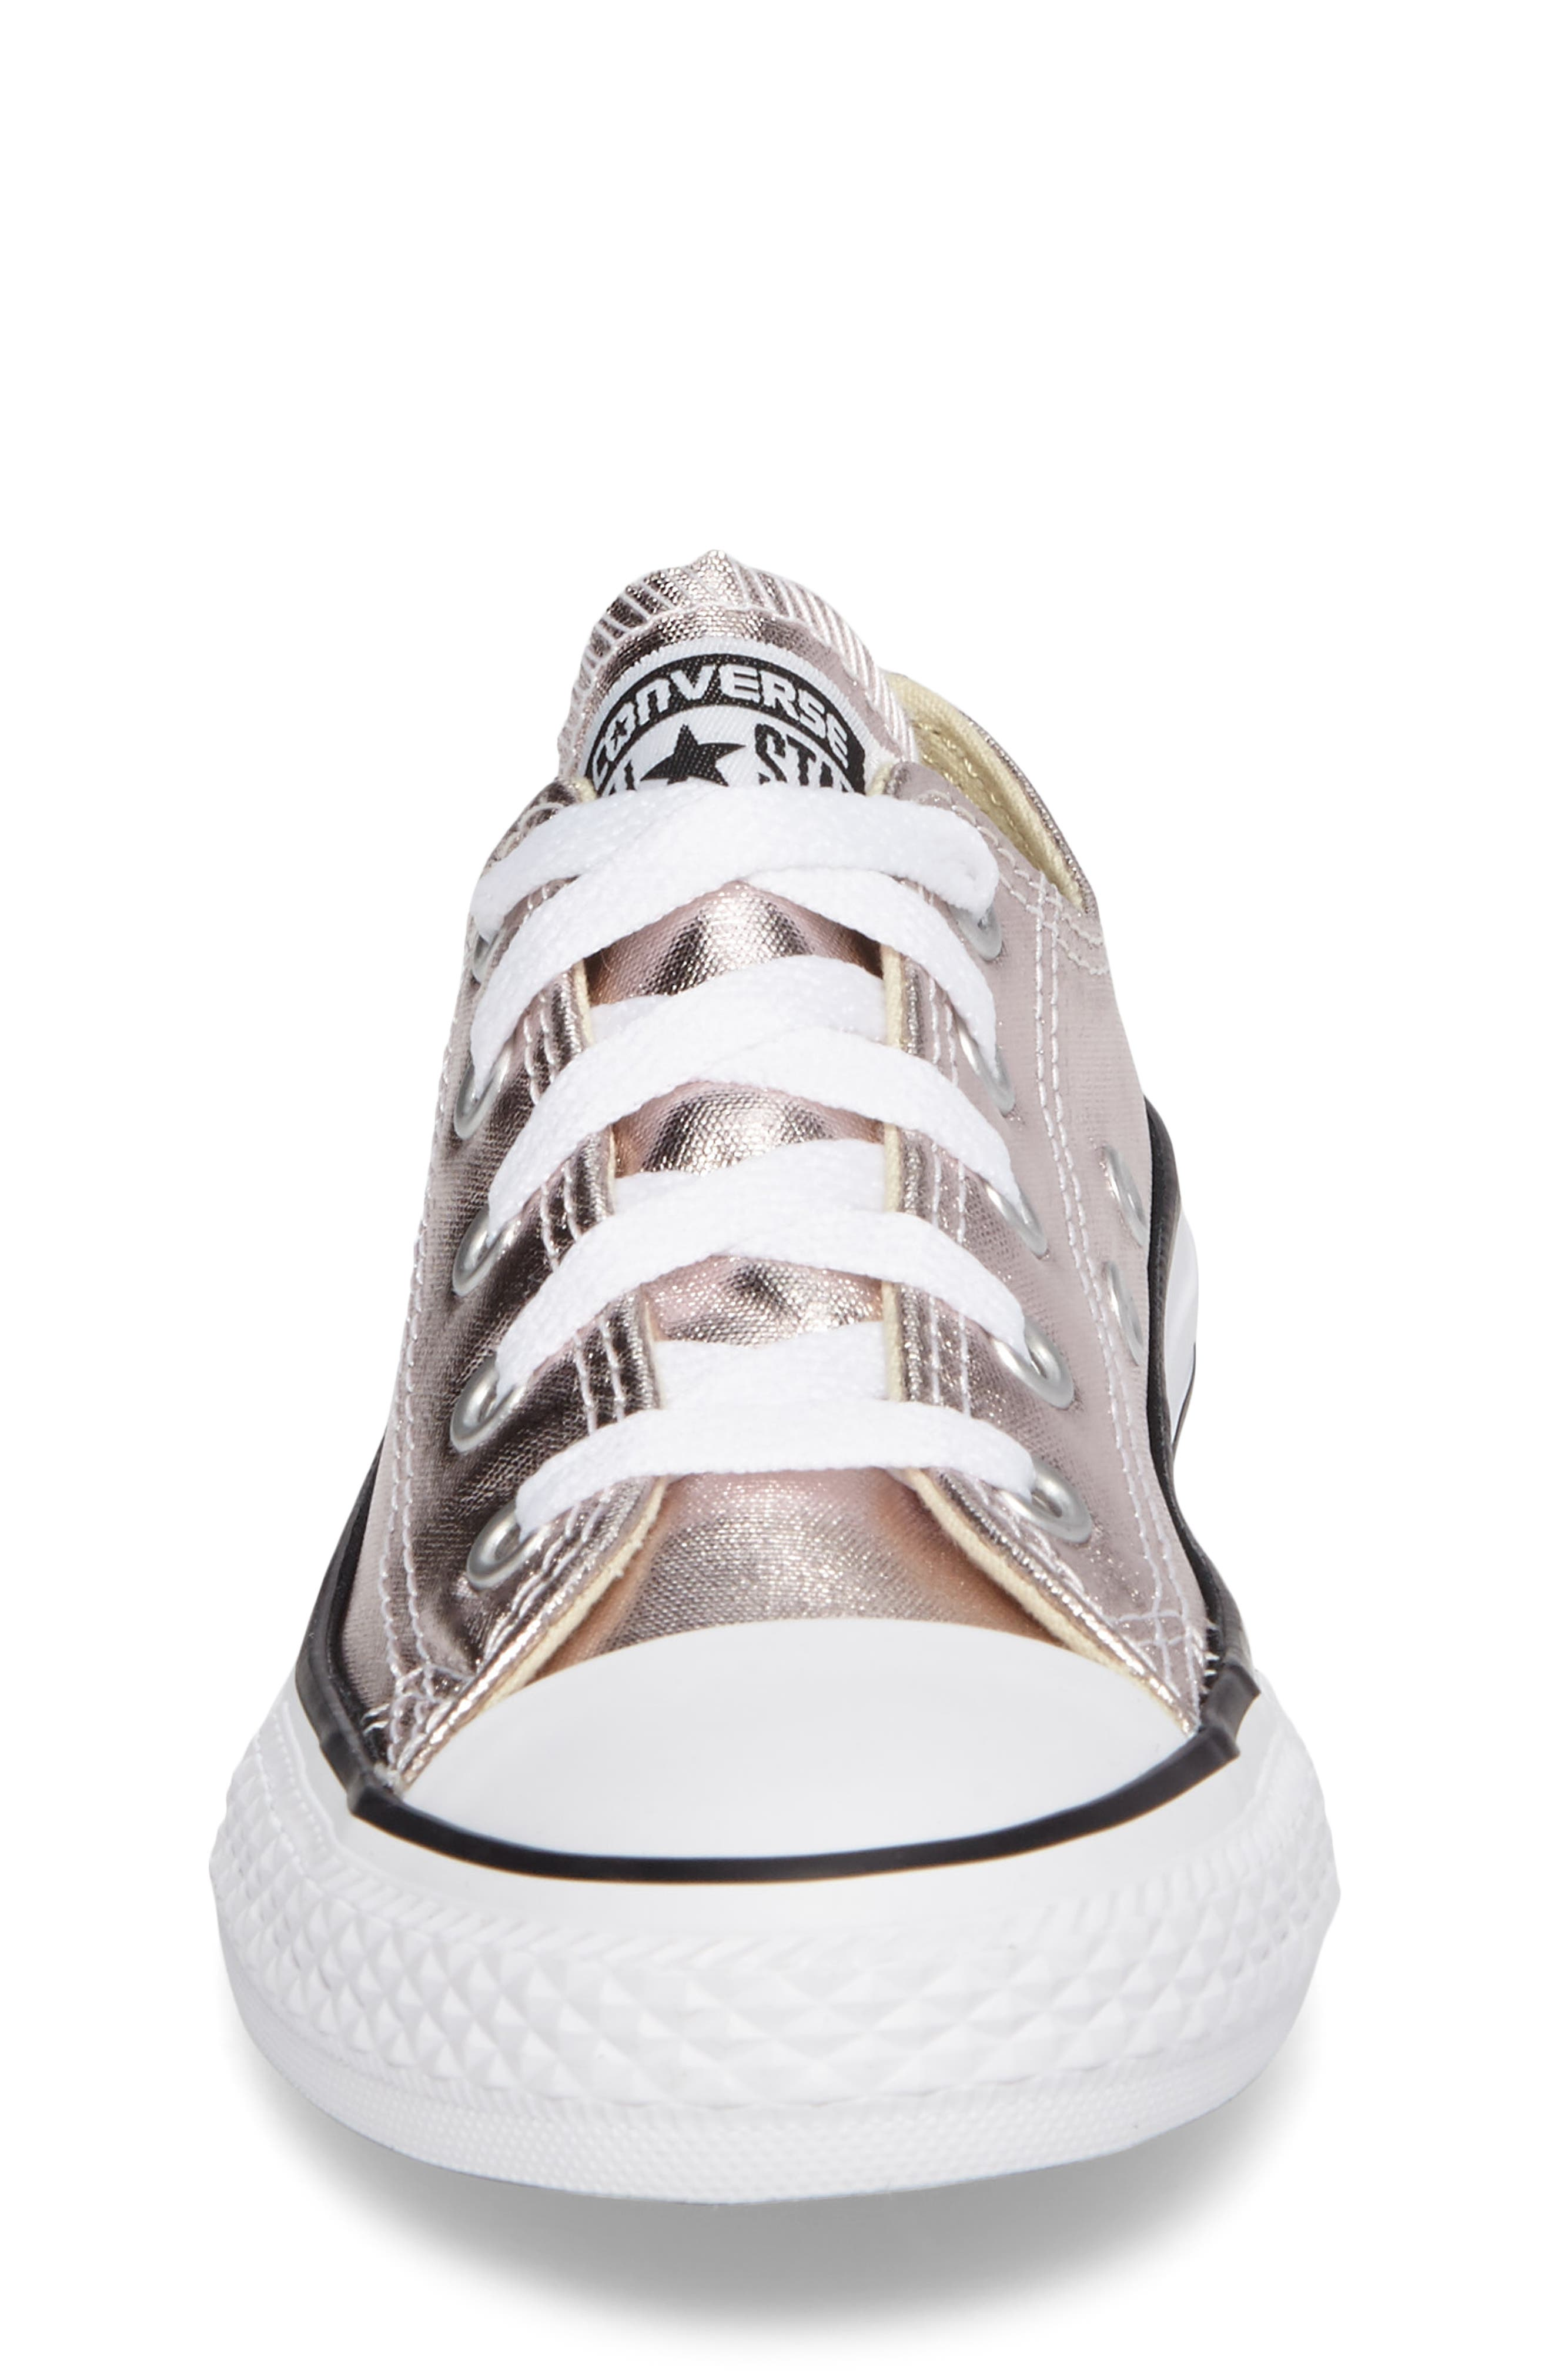 Chuck Taylor<sup>®</sup> All Star<sup>®</sup> Ox Metallic Low Top Sneaker,                             Alternate thumbnail 4, color,                             220